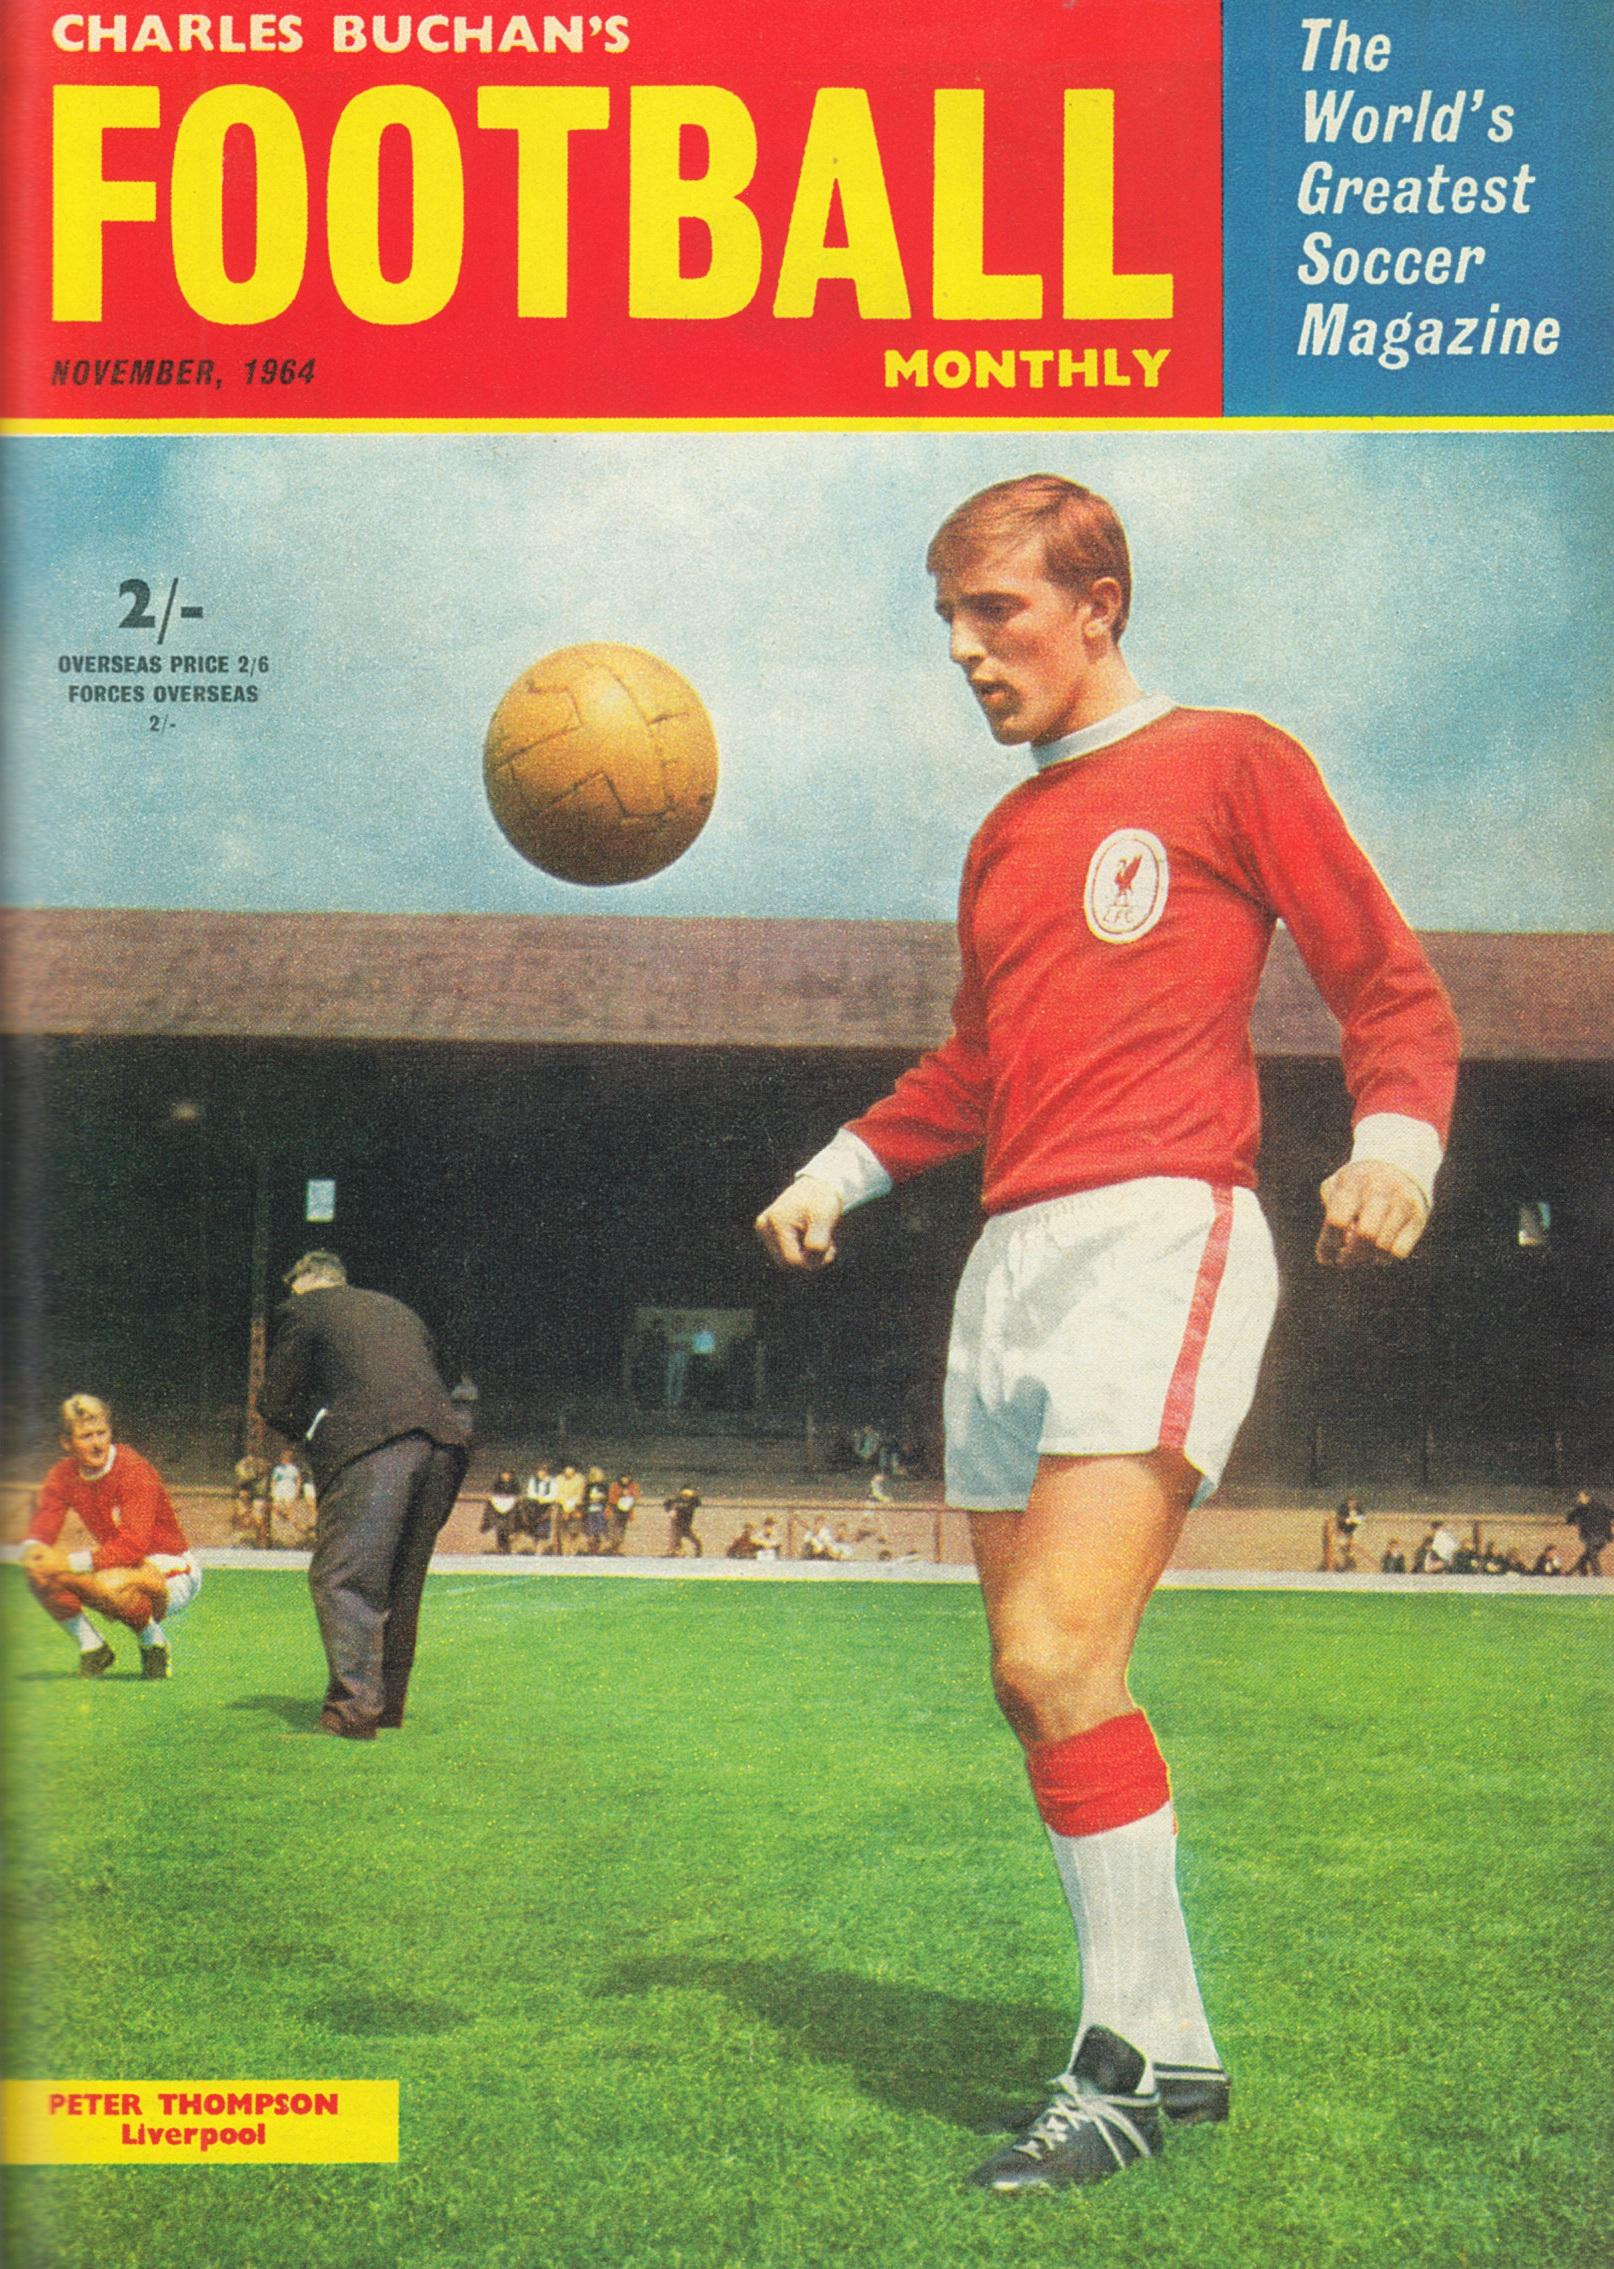 Peter Thompson on the cover of the Football Monthly November 1964